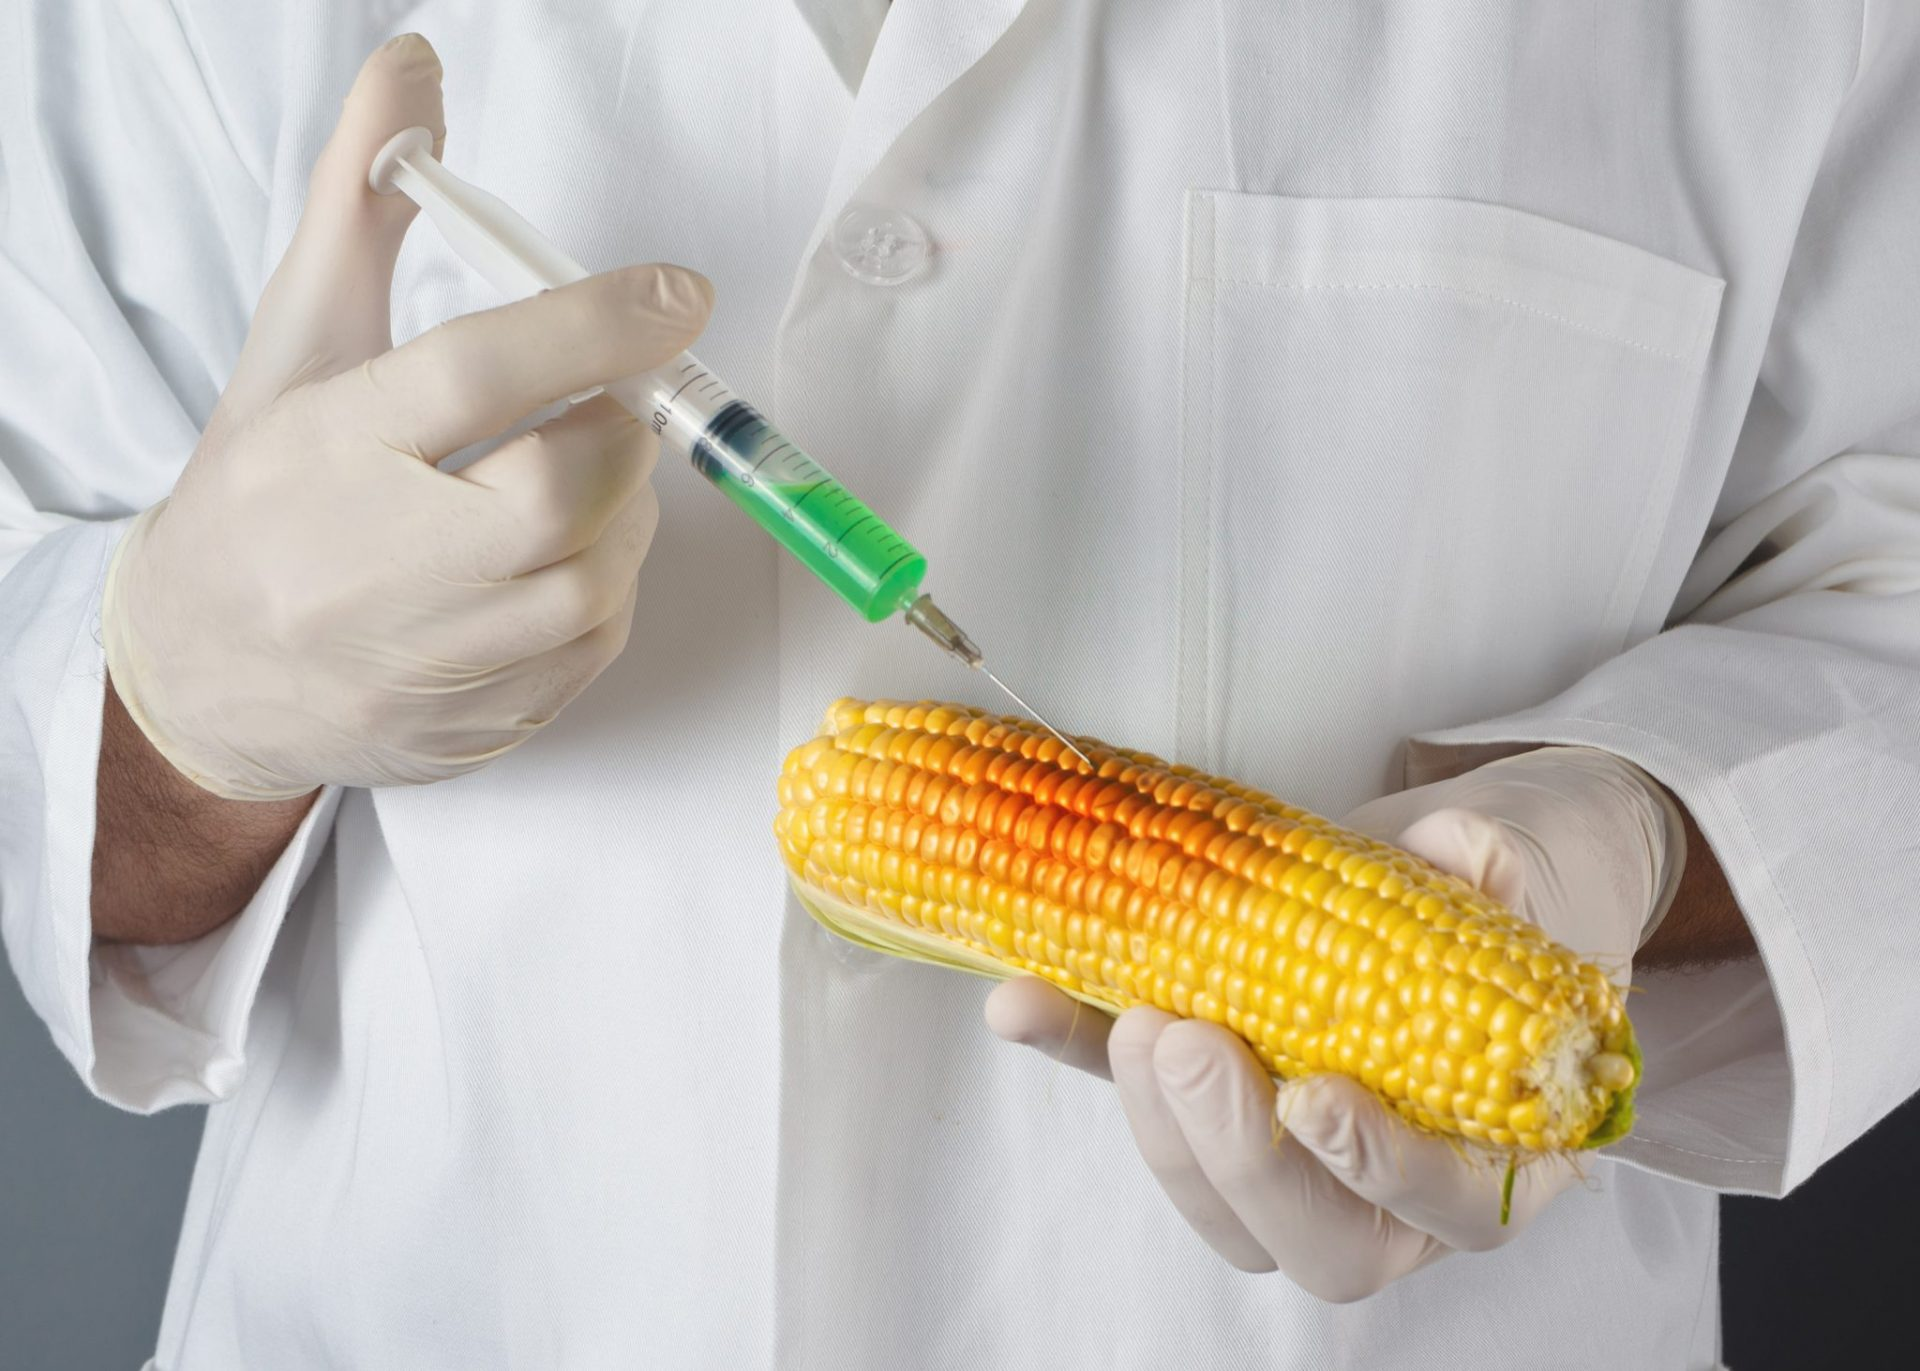 Gmo Dangers Exposed By Soil Scientist